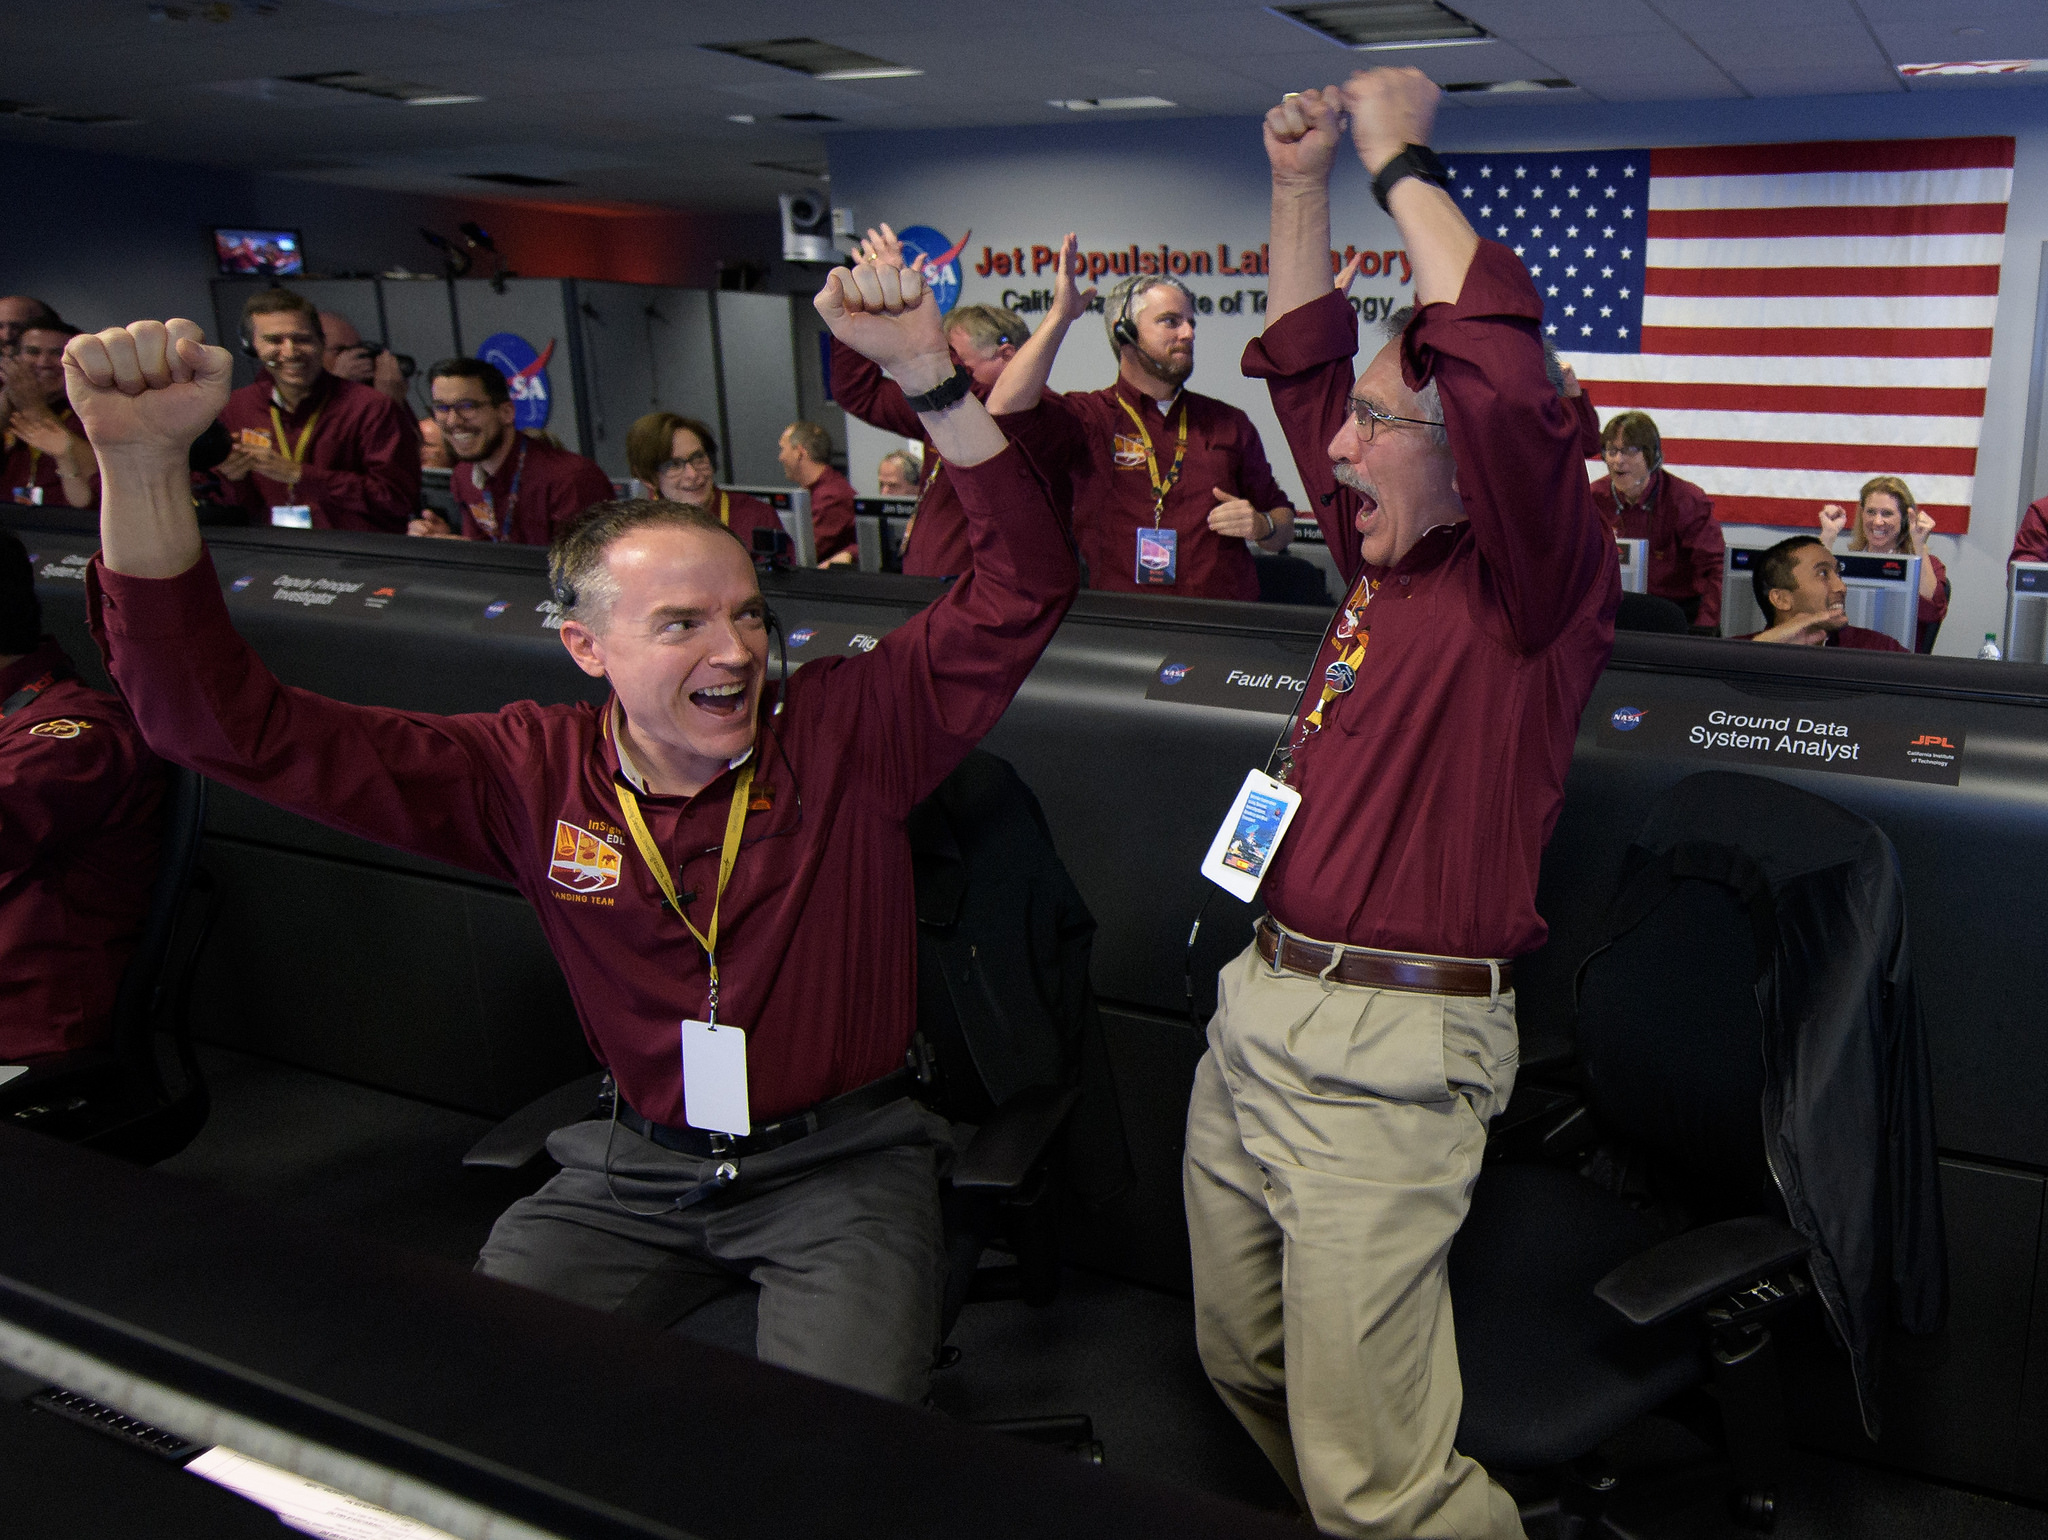 Mars In Sight team members Kris Bruvold left and Sandy Krasner react after receiving confirmation that In Sight landed